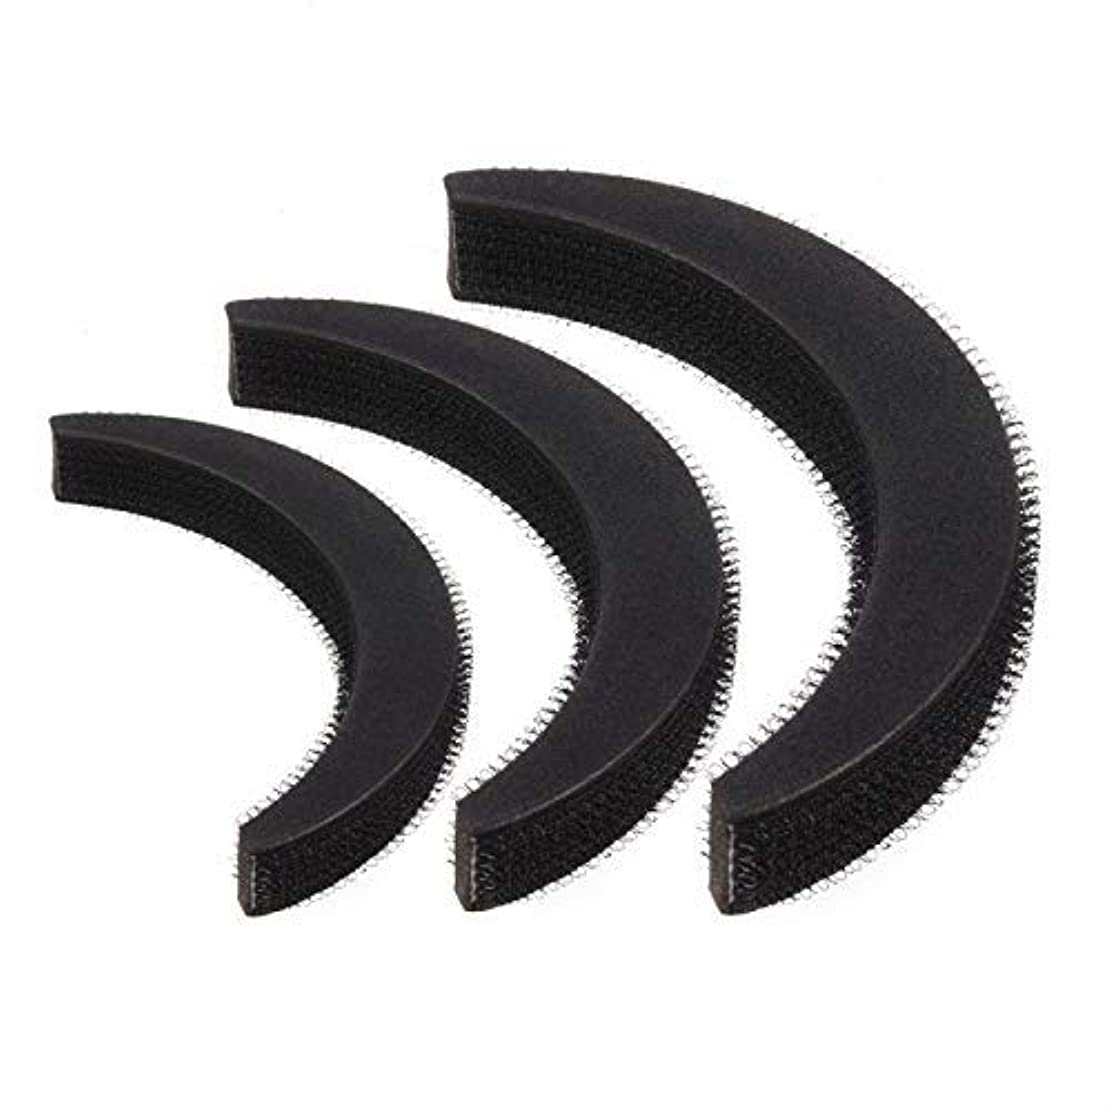 崇拝する逃れるそれに応じてFeeko Hair Bump,3psc Hair Bumpit Roll Honeycomb Hair Bump Hair Pad Haight Hairdressing Set Tool Black [並行輸入品]